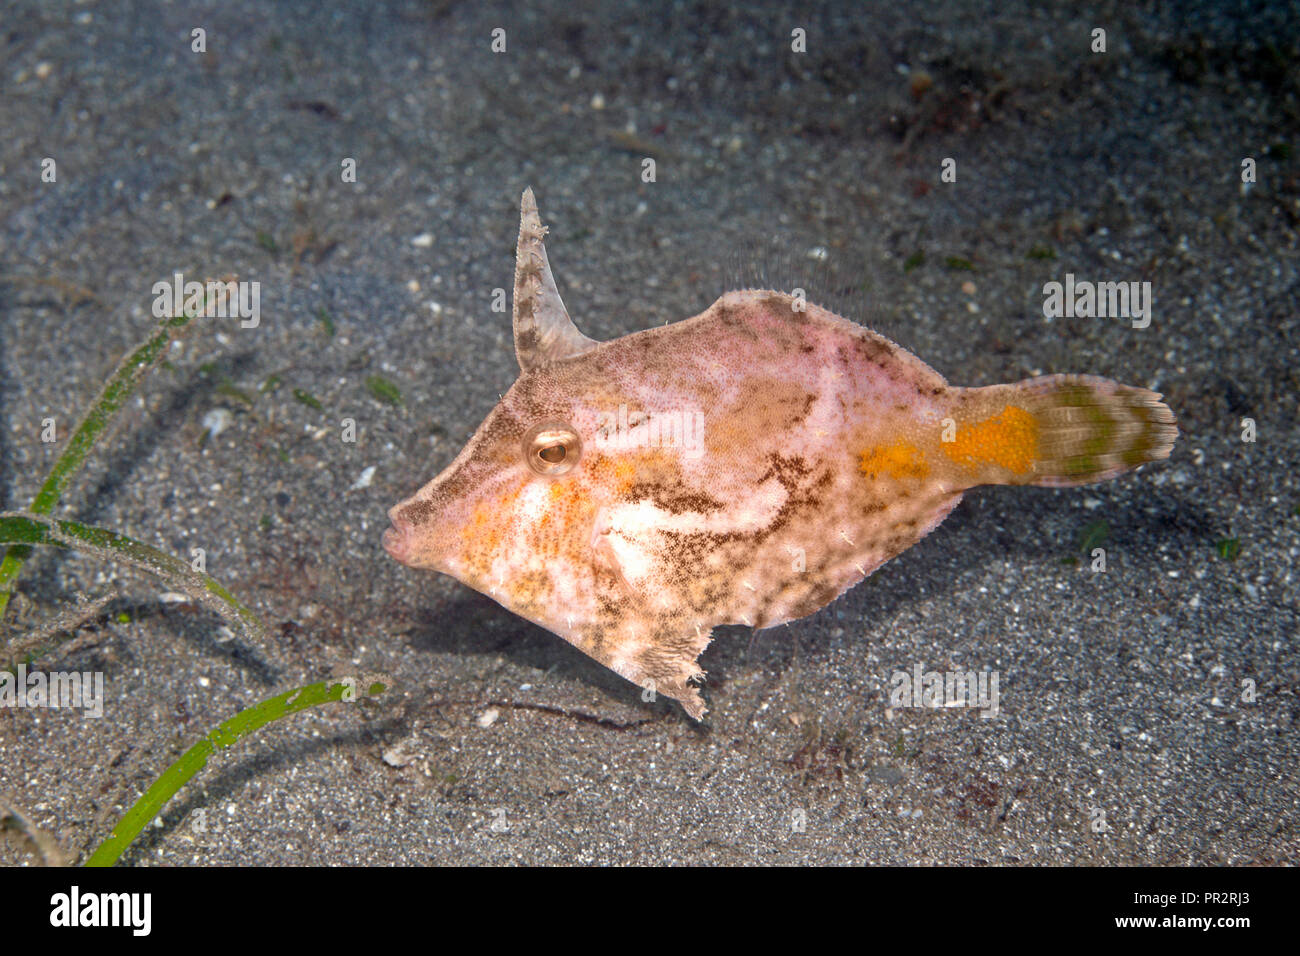 Bristle-Tail Filefish, Acreichthys tomentosus. Also known as Seagrass Filefish. Pemuteran, Bali, Indonesia. Bali Sea, Indian Ocean - Stock Image